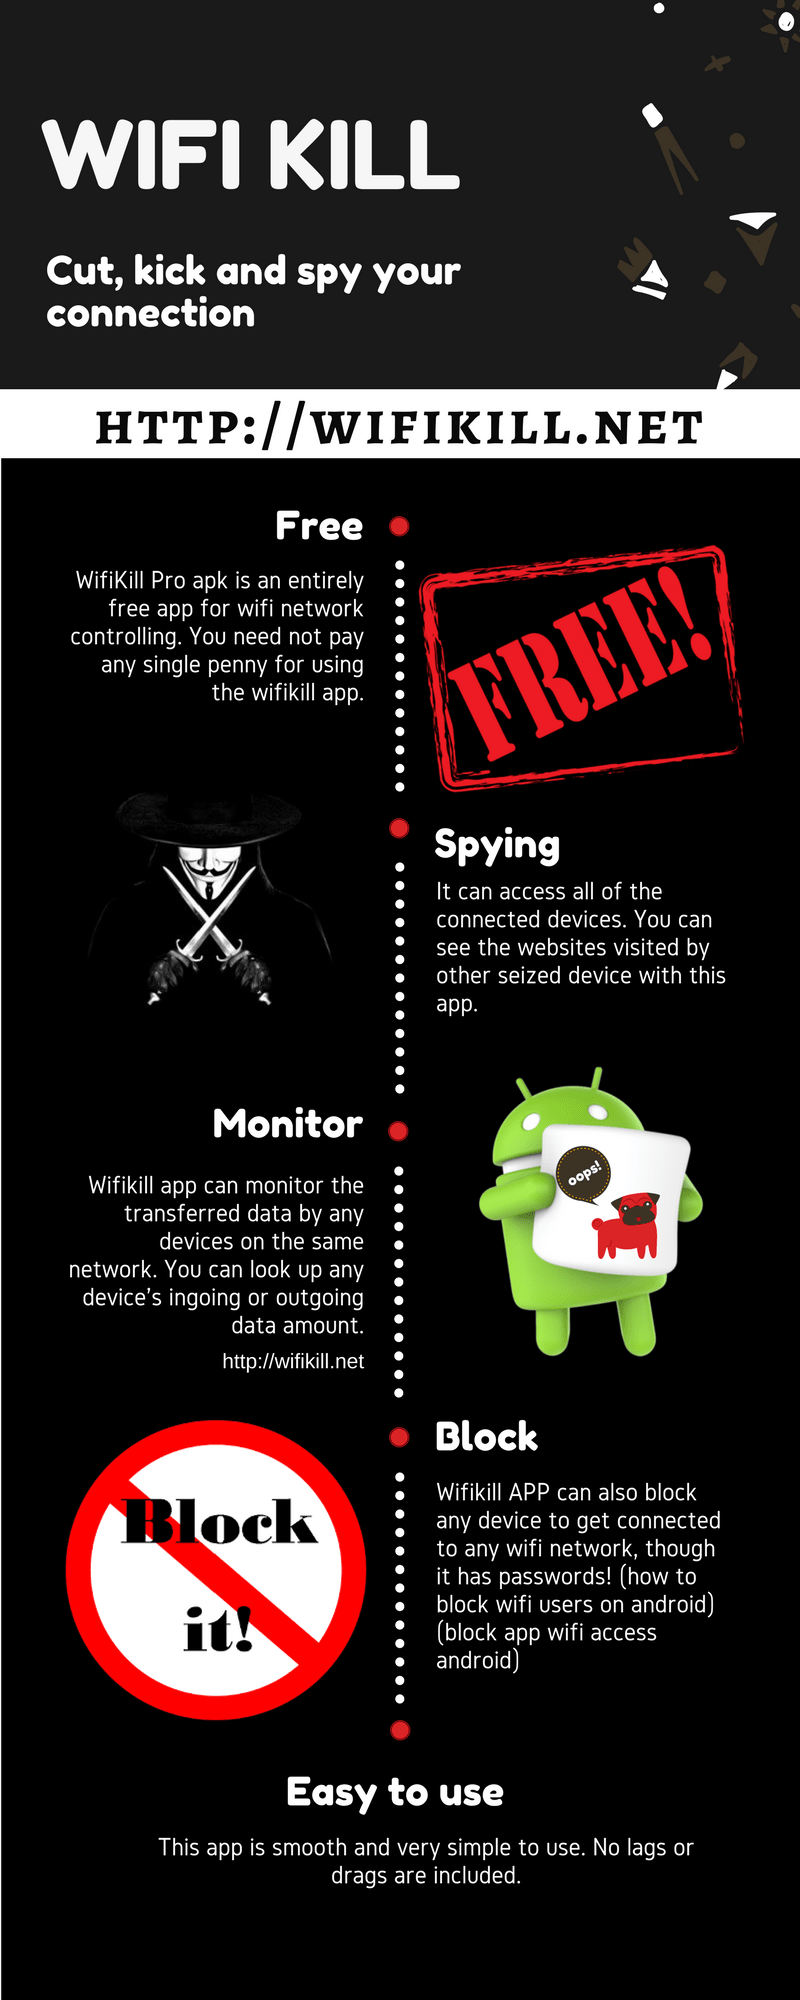 Wifi Killer APP Free Download | Wifi Kill Pro APK & Smart WiFi